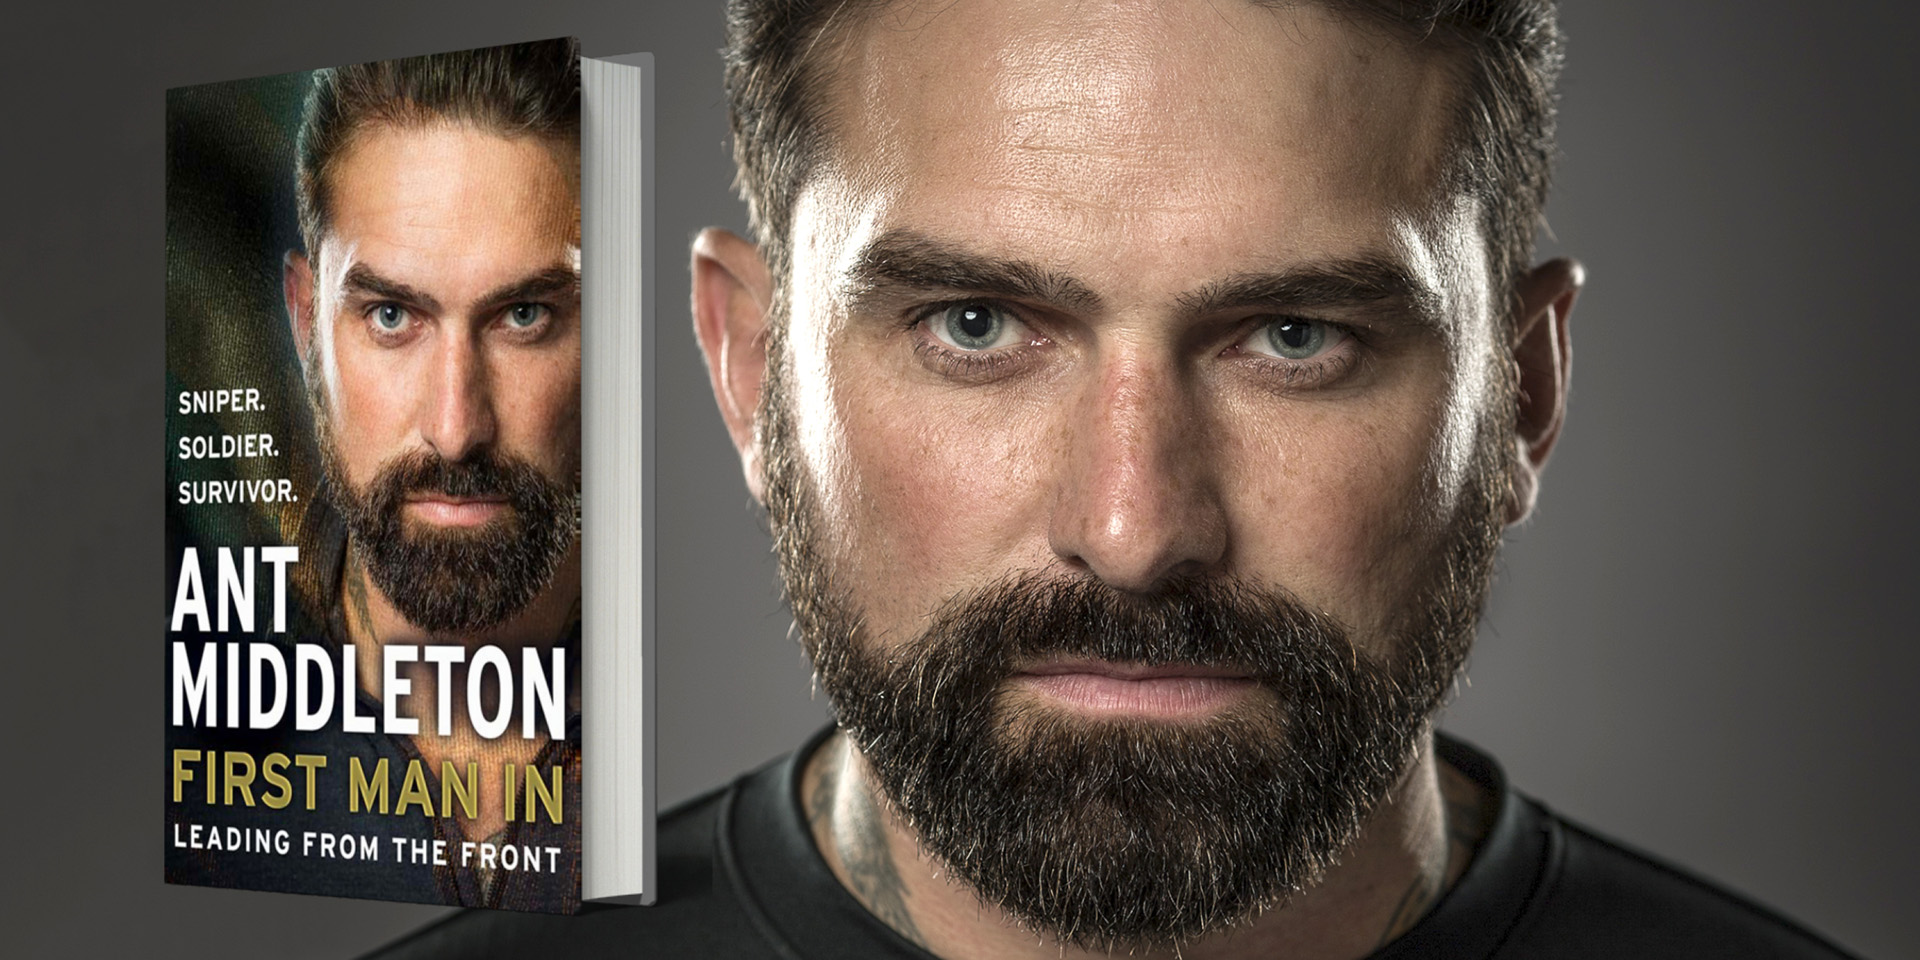 Ant Middleton First Man In book cover